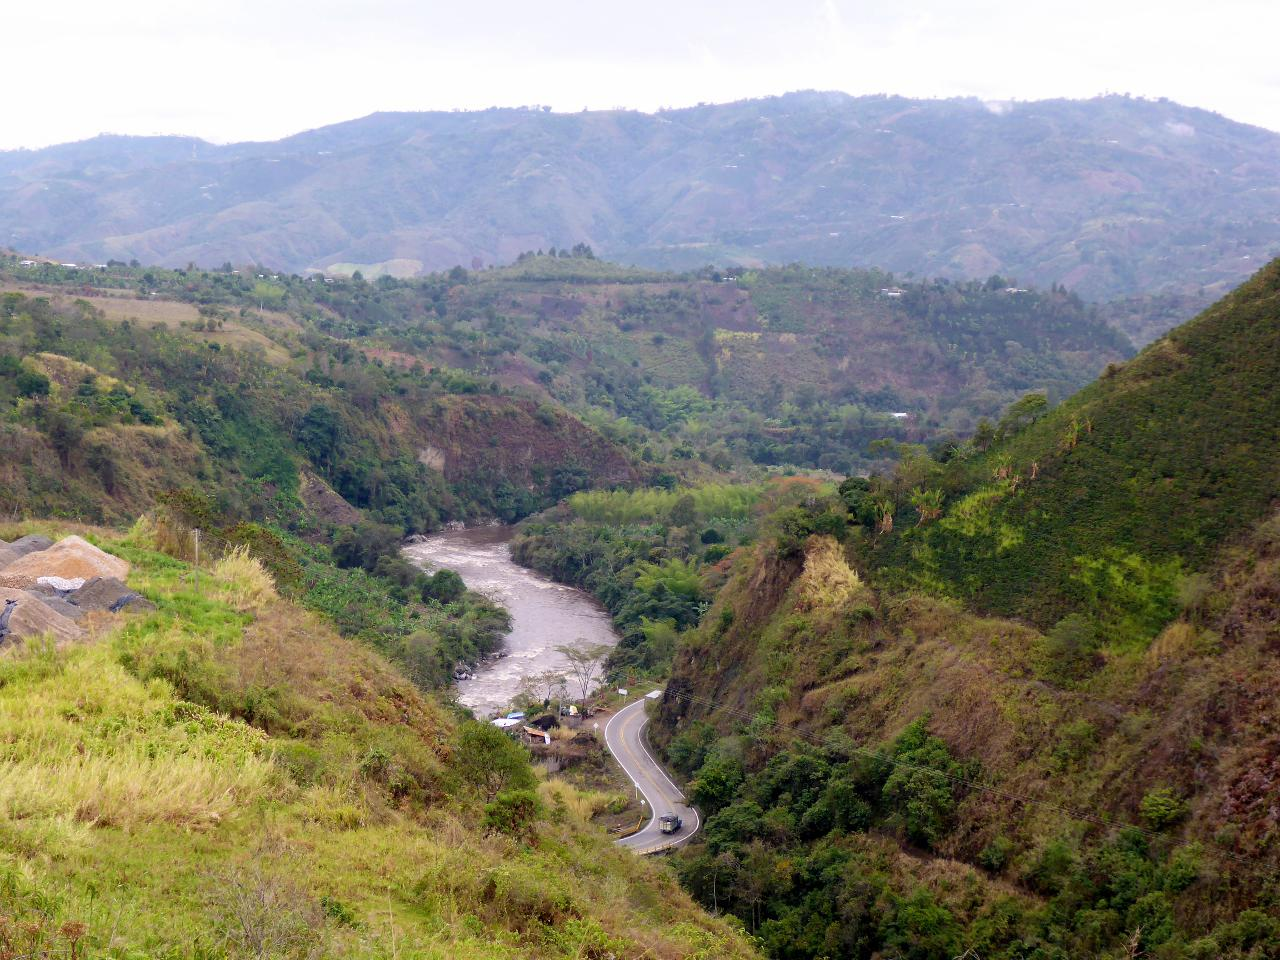 A fast descent from San Agustin.